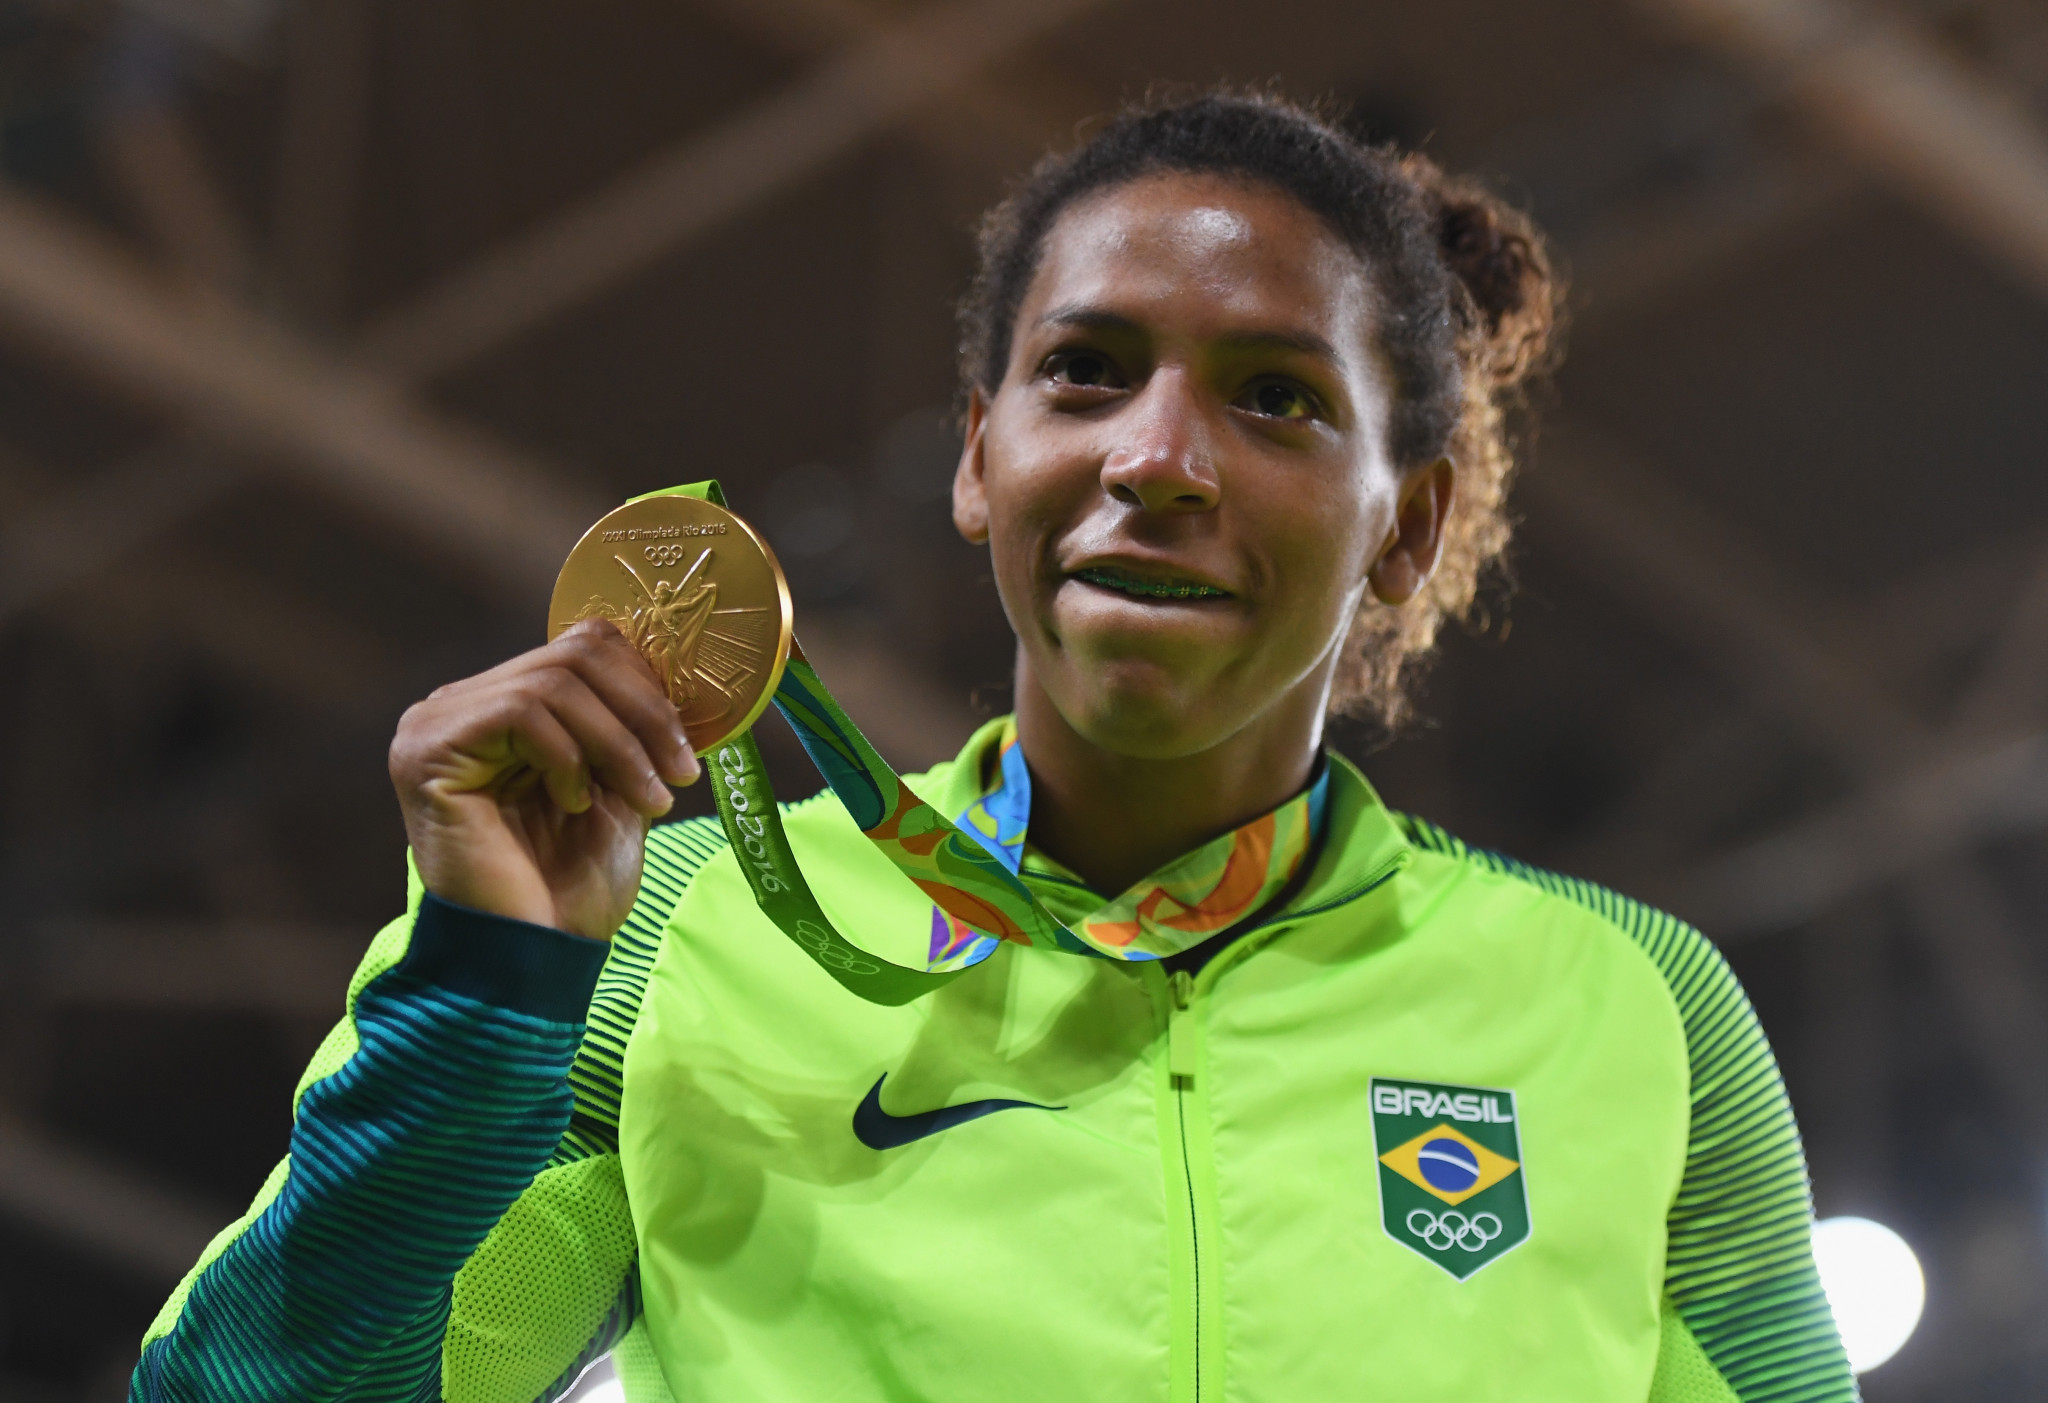 Rafaela Silva earned Brazil's first gold medal at the Rio 2016 Olympic Games ©Getty Images